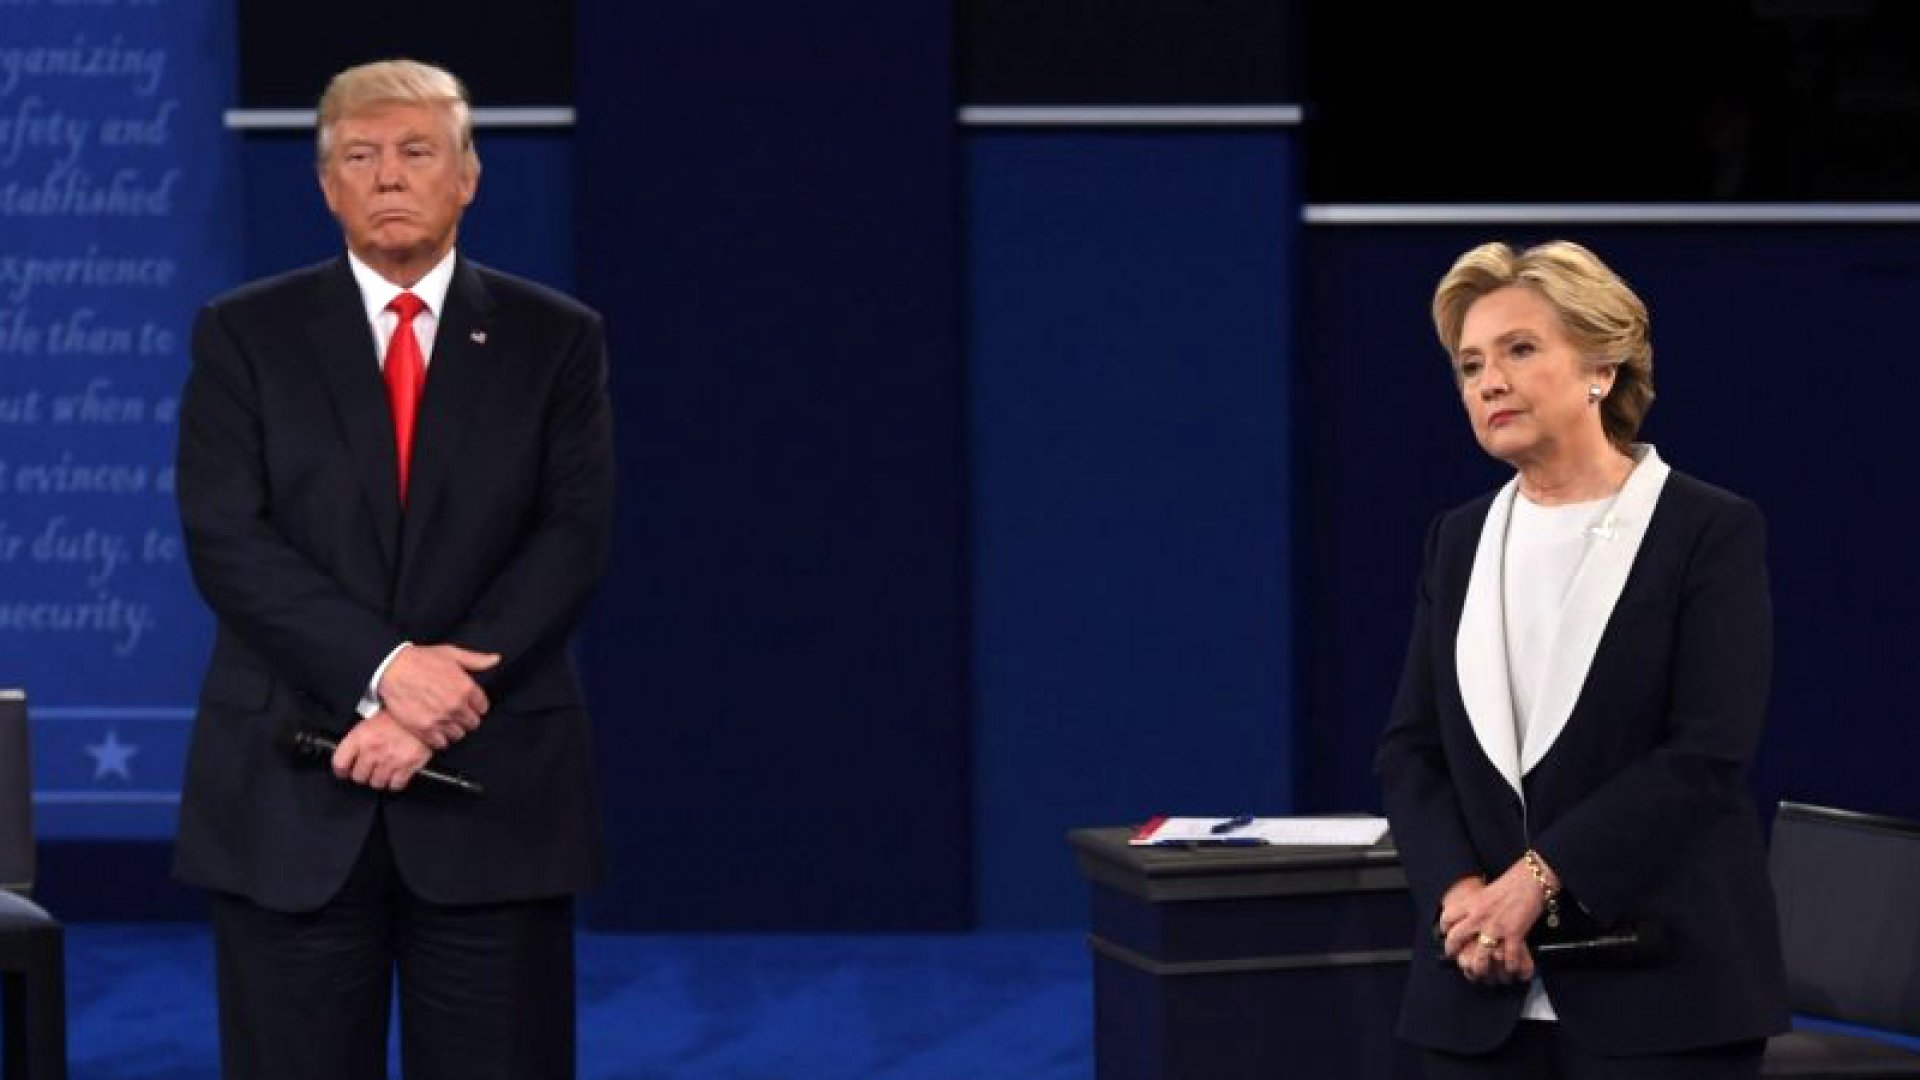 The 5 Biggest Body Language Fails of the Presidential Debate (and 1 Brilliant Subconscious Cue)